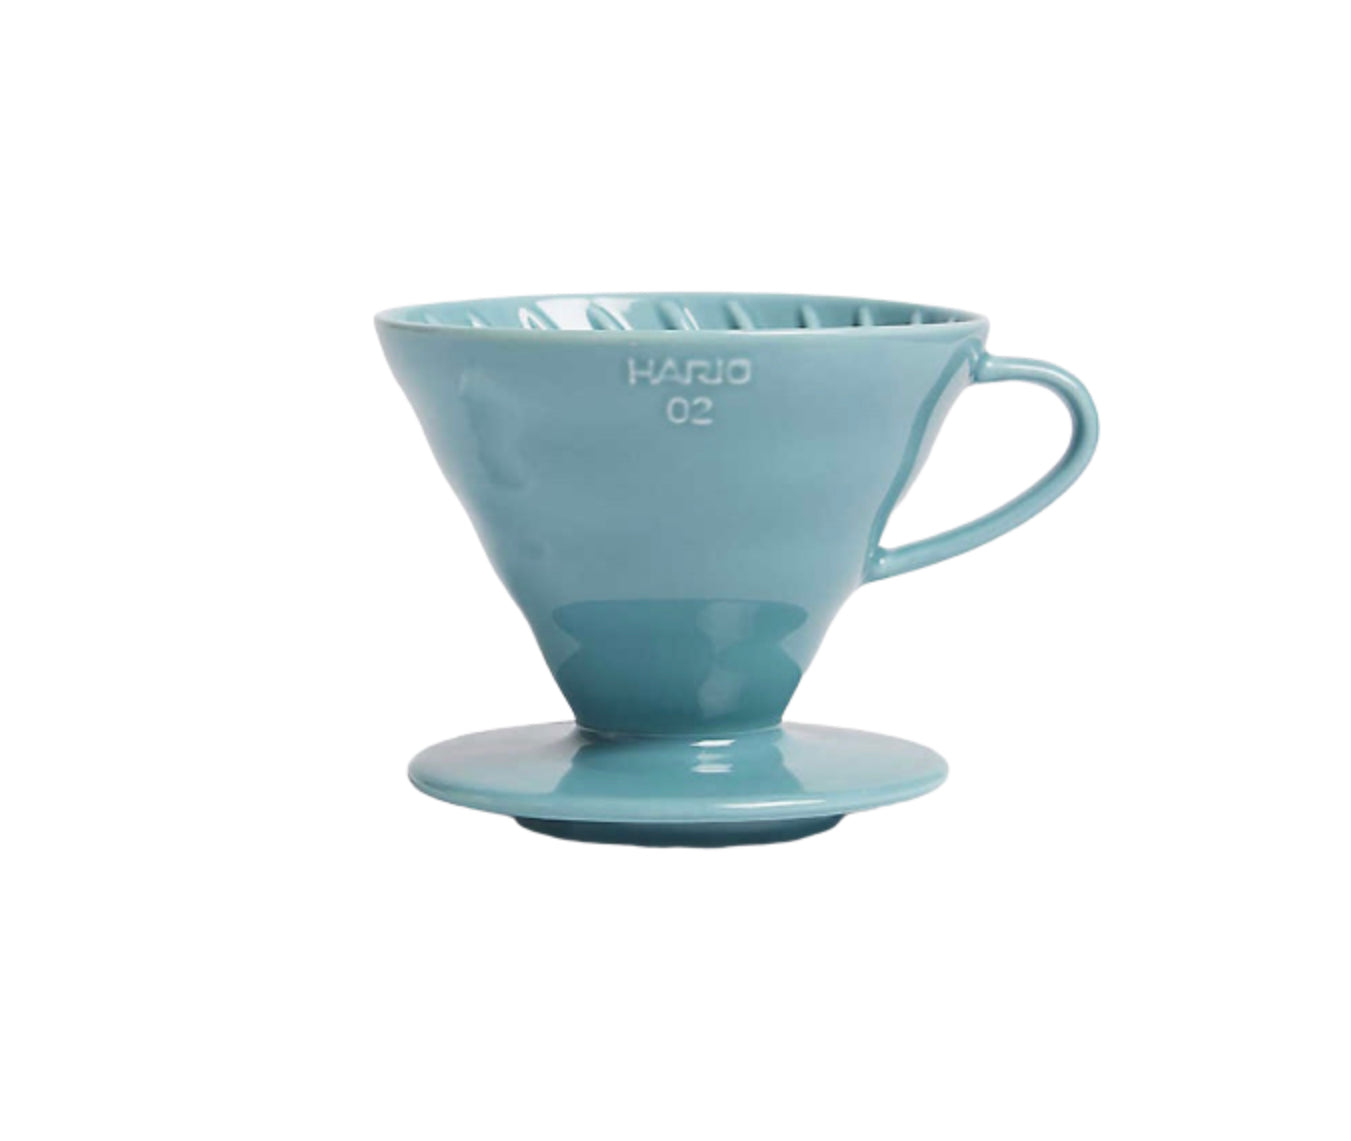 Hario coffee Dripper V60 02 Ceramic - Blue